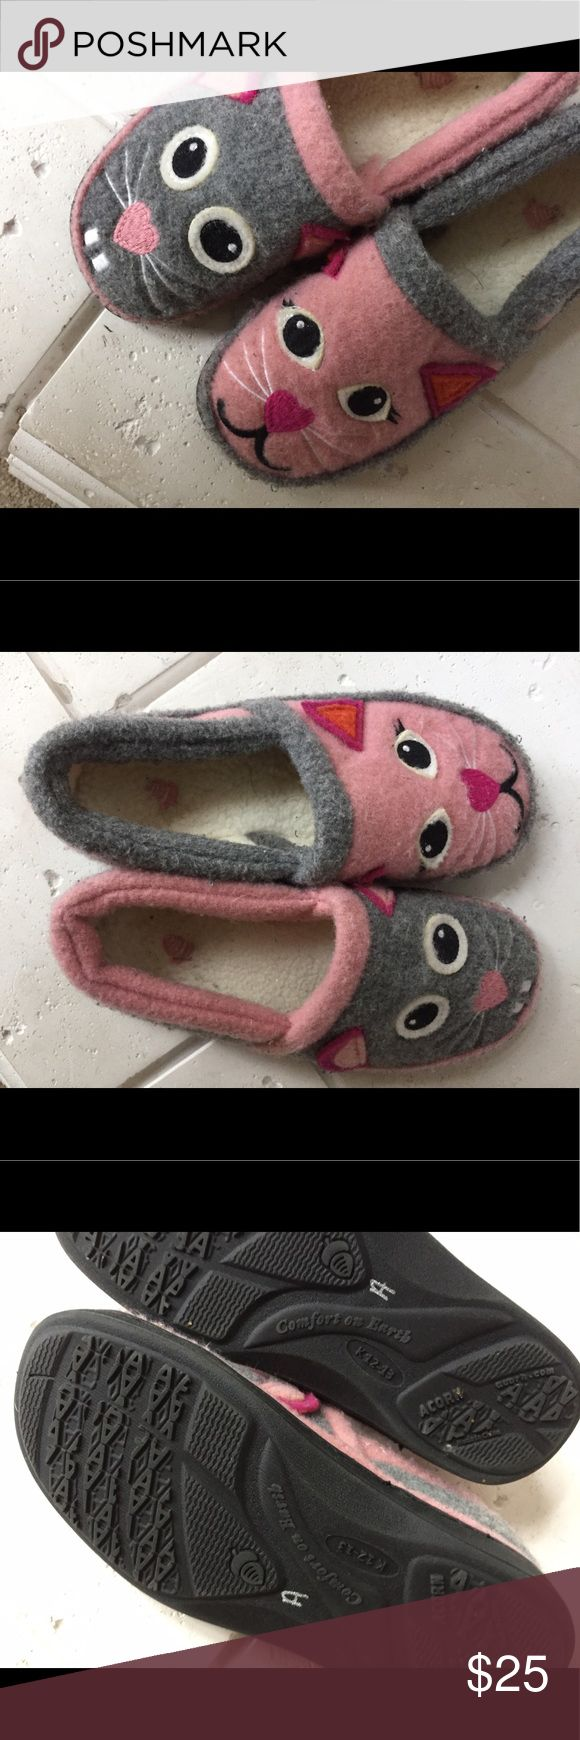 Acorn character shoes Faux woolly comfortable slipper shoes. Cute cute cute!! I think they are about size 3 or 4. 9 inches long from heel to toe. Acorn Shoes